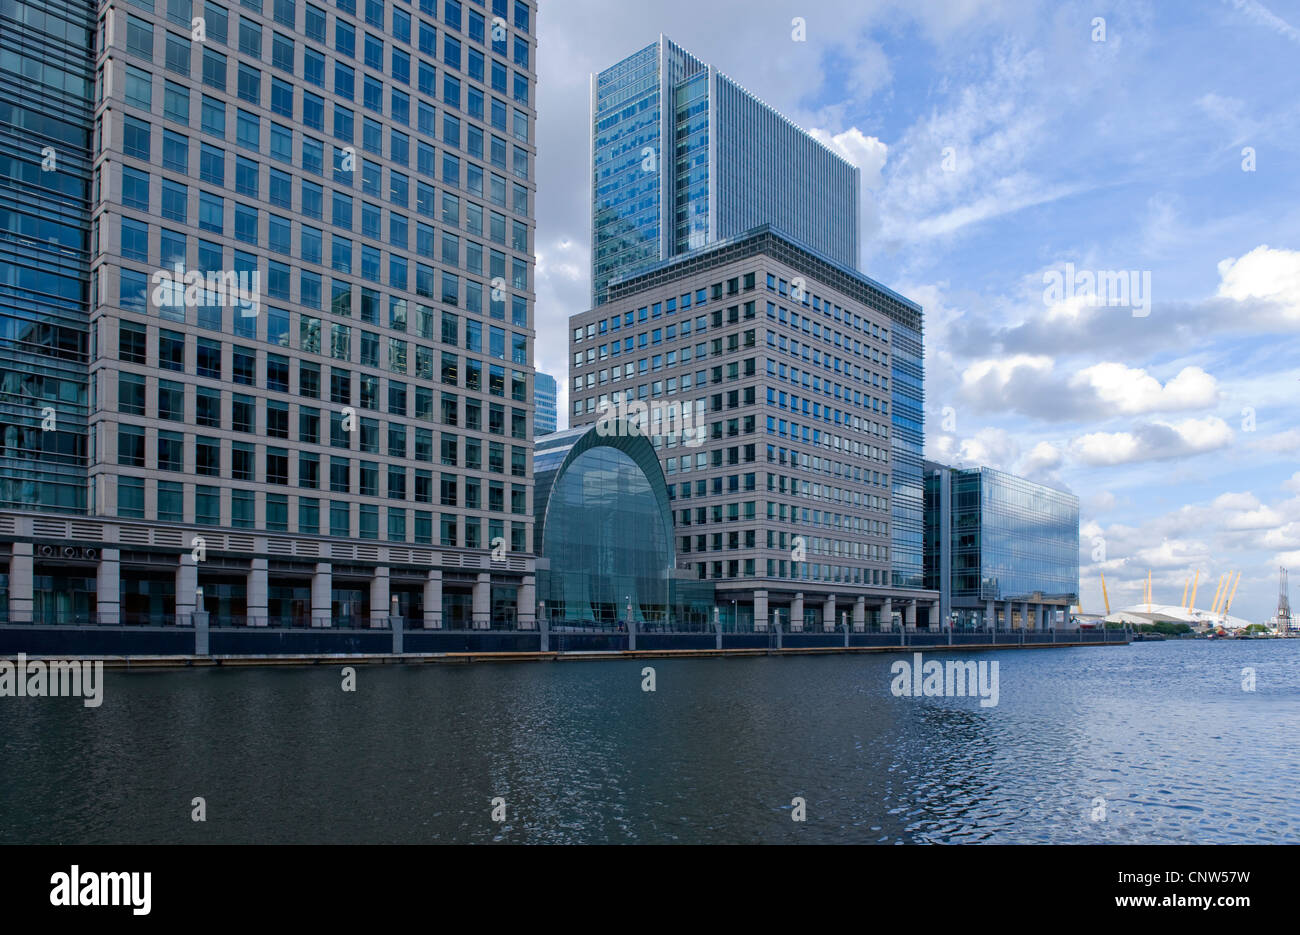 Europe England London, modern architecture in Jubilee Place - Stock Image